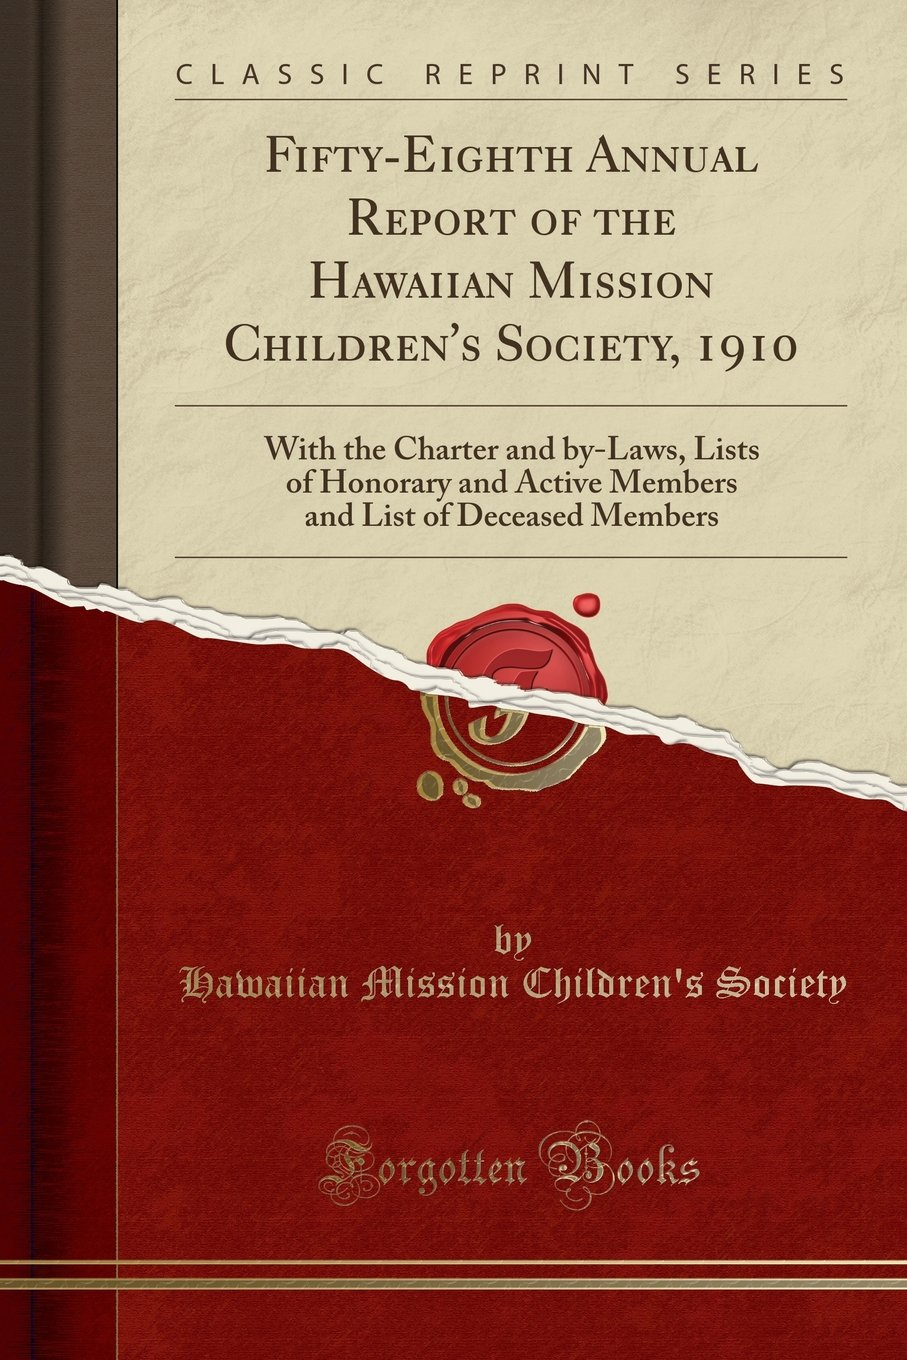 Fifty-Eighth Annual Report of the Hawaiian Mission Children's Society, 1910: With the Charter and by-Laws, Lists of Honorary and Active Members and List of Deceased Members (Classic Reprint) PDF